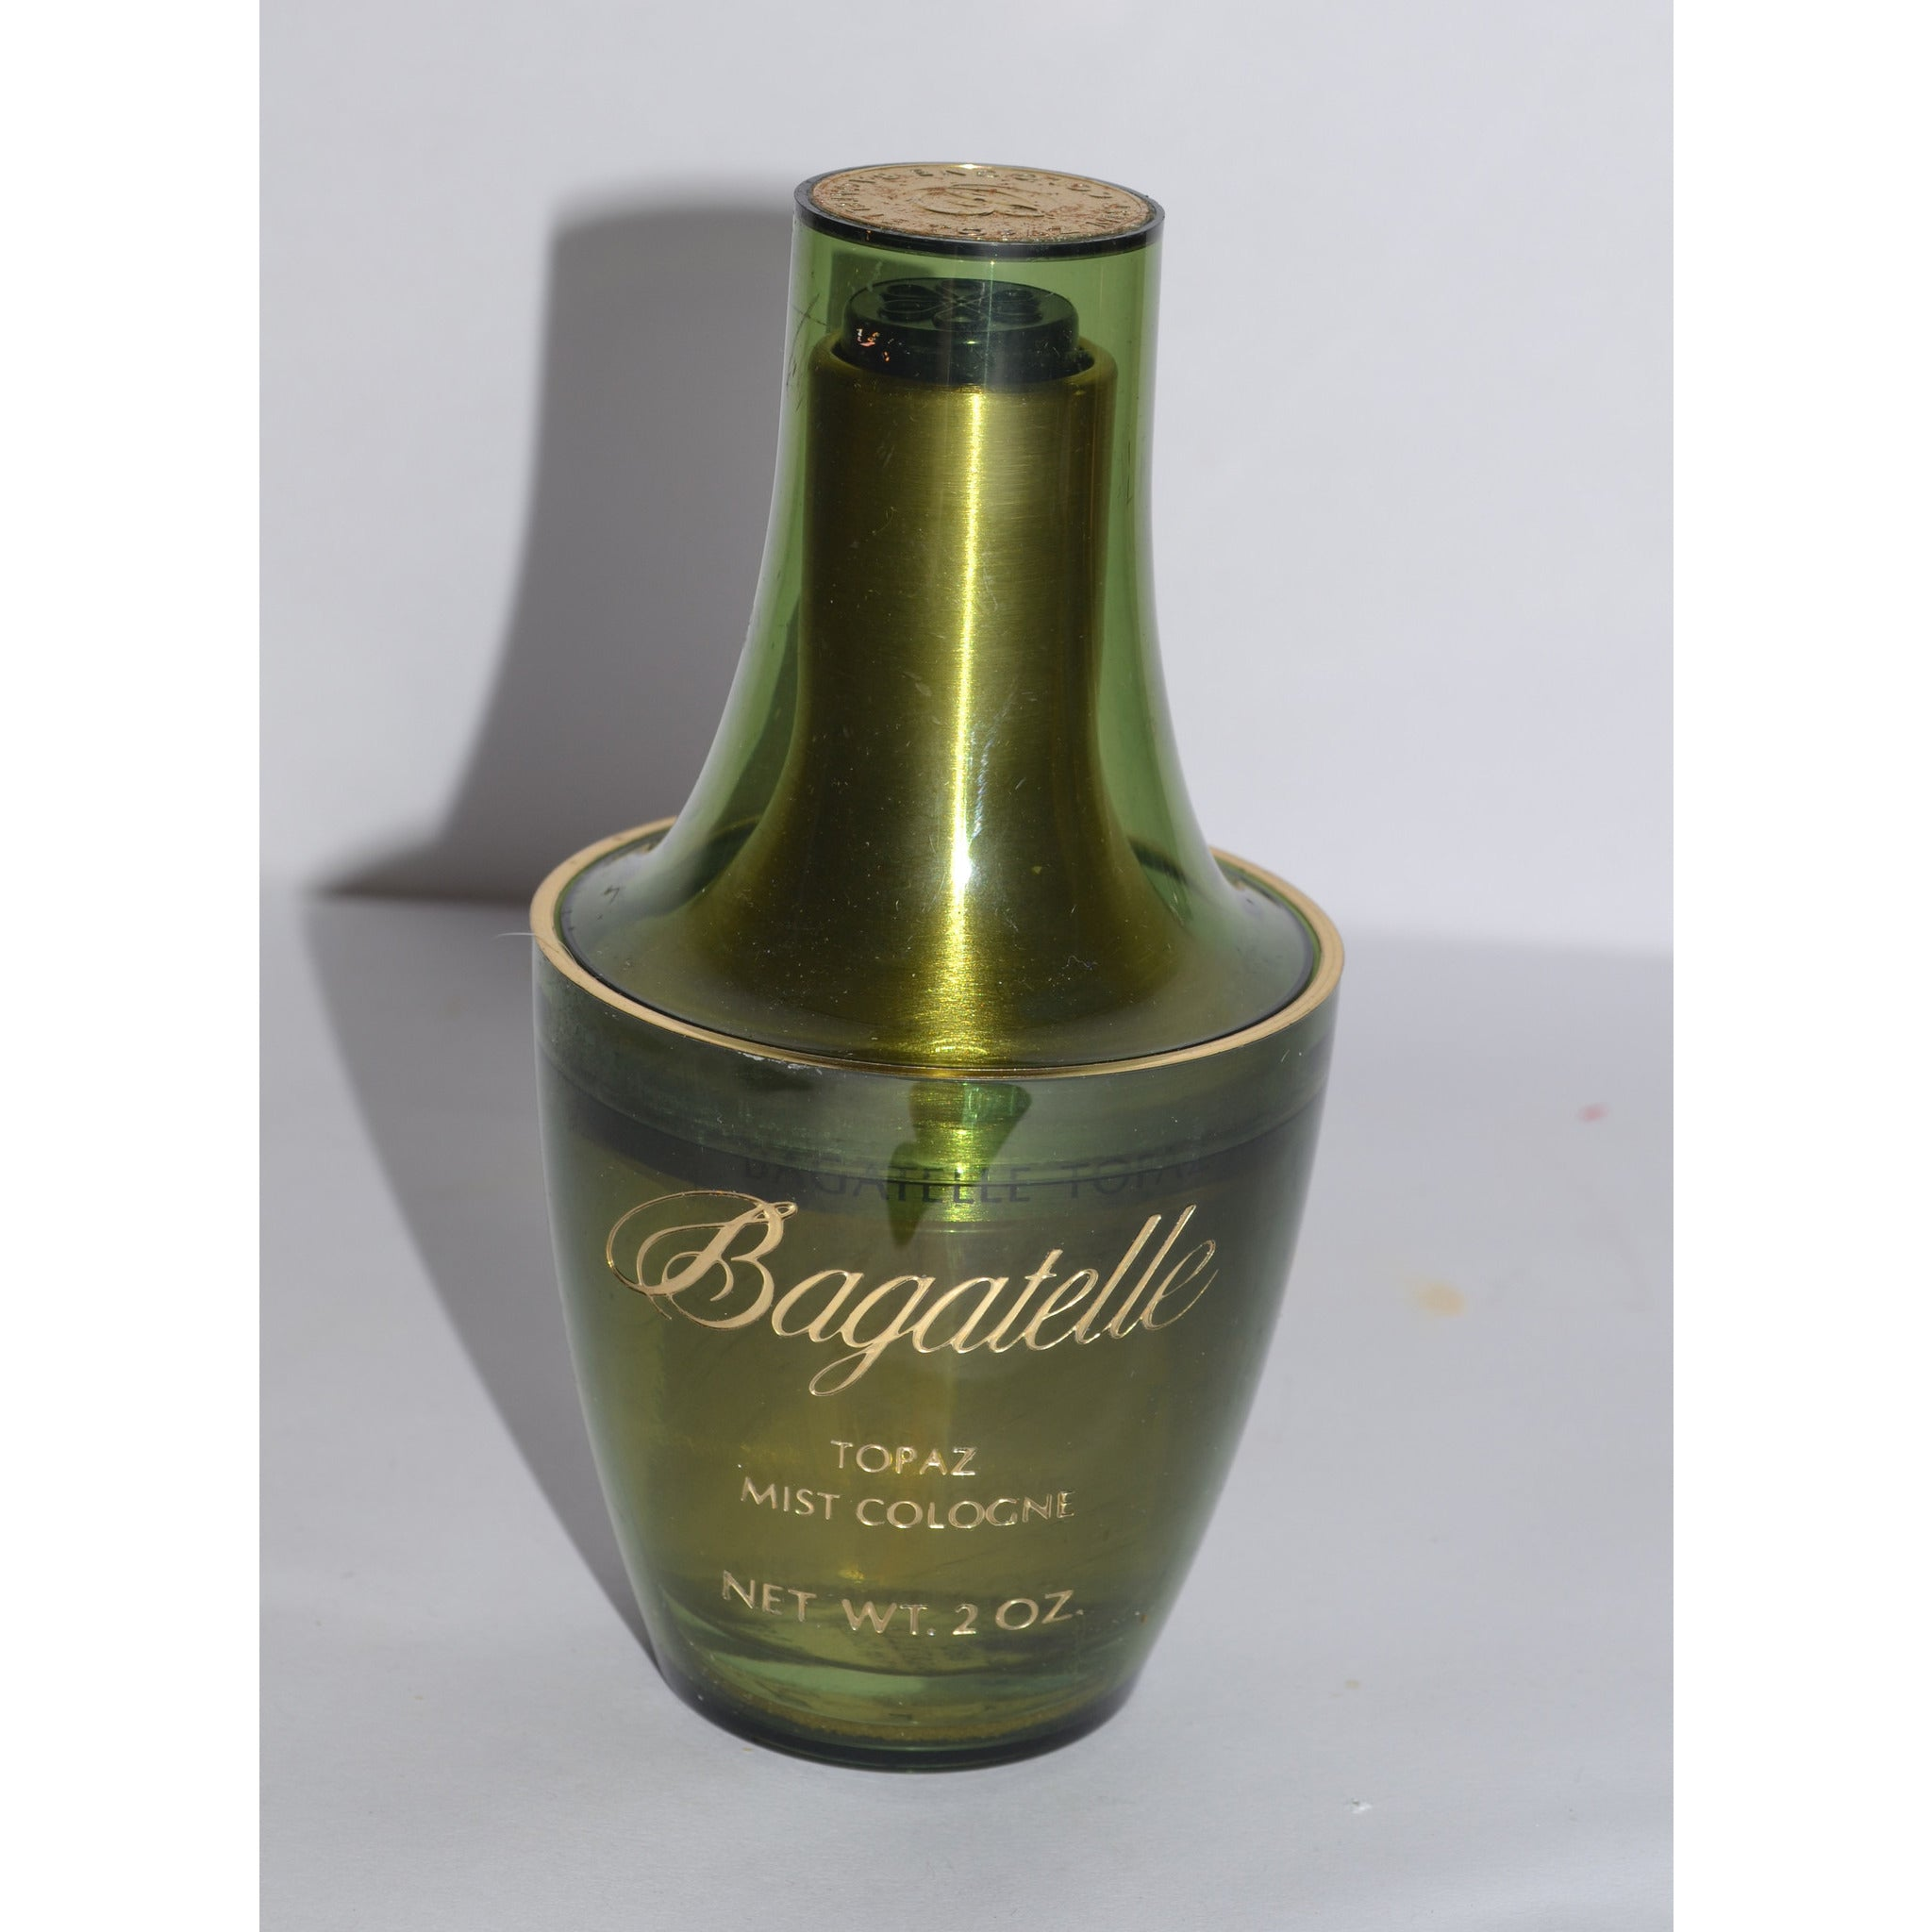 Vintage Bagatella Topaz Cologne By Conrad Co.